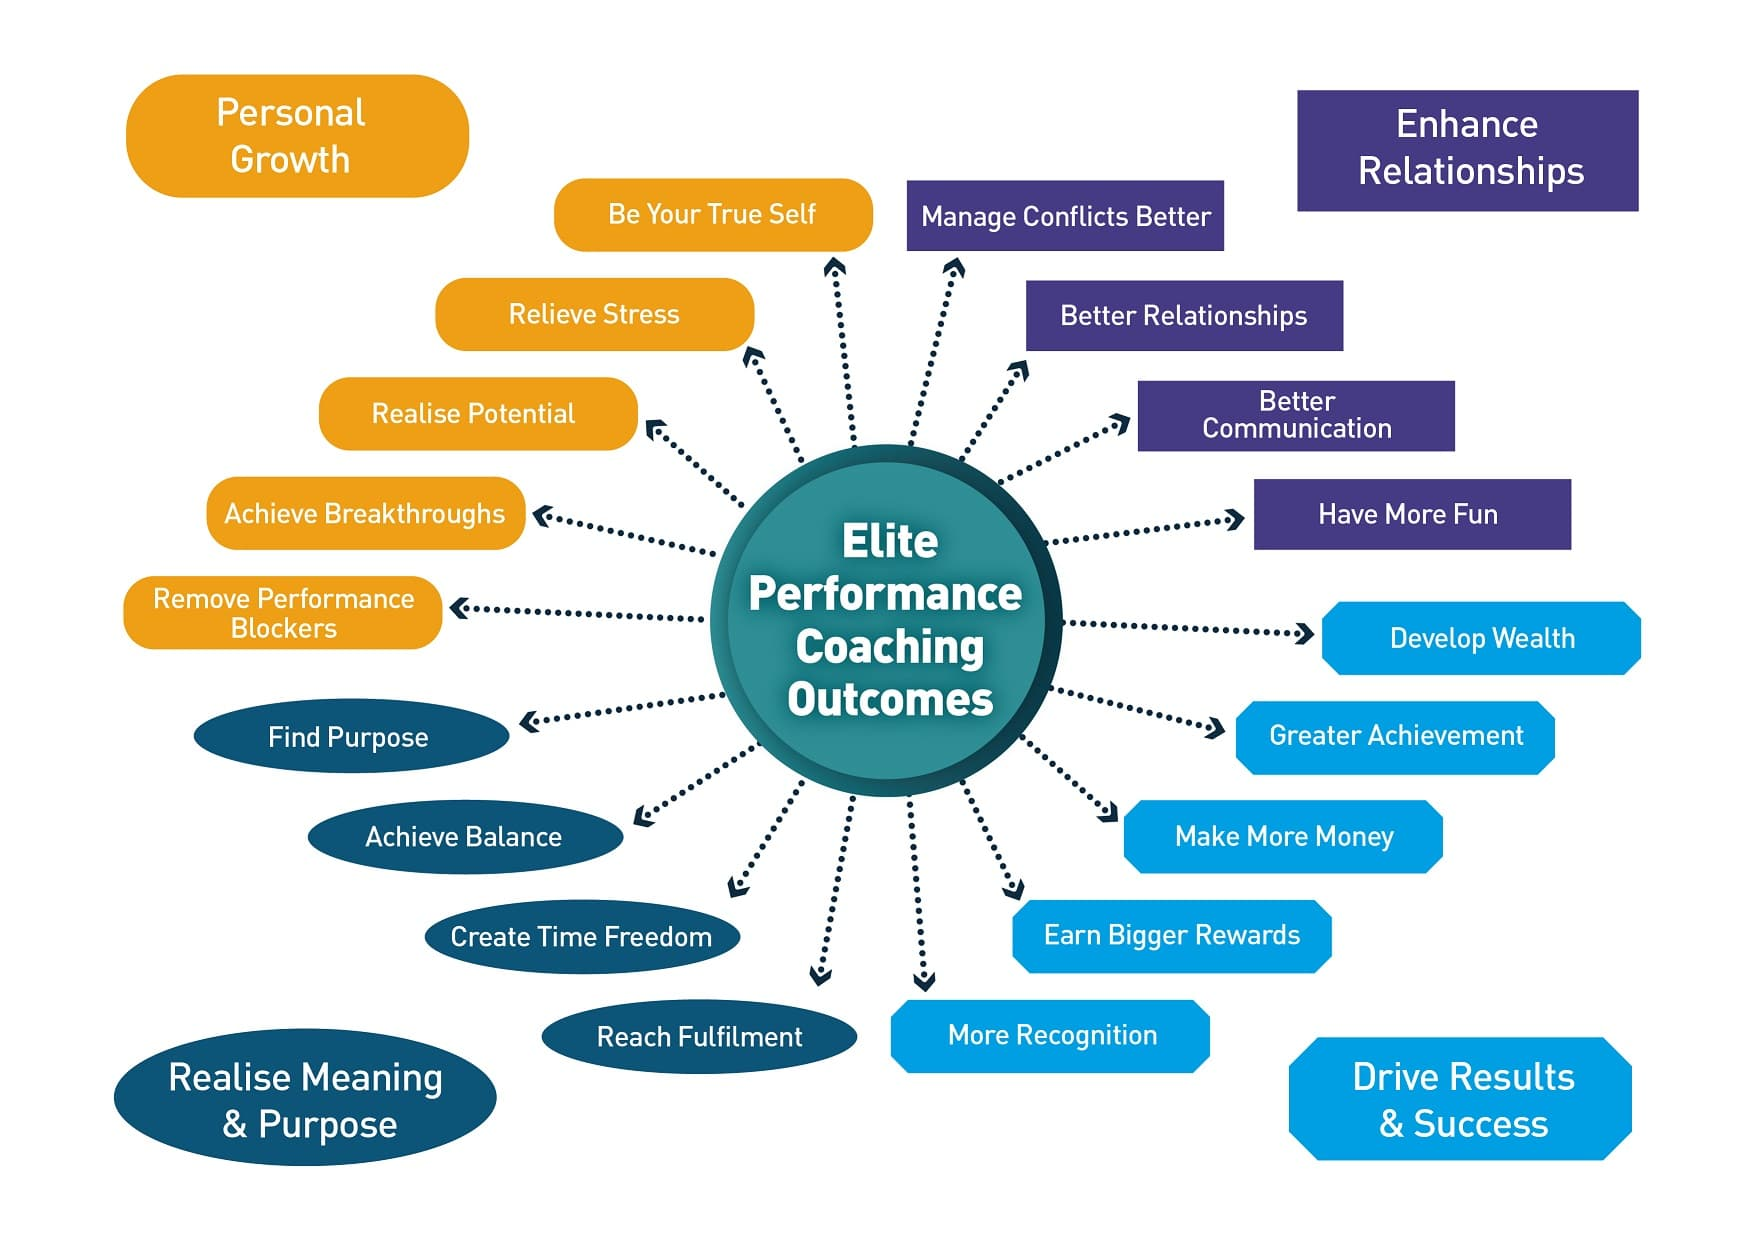 Who can benefit from Elite Performance Coaching?